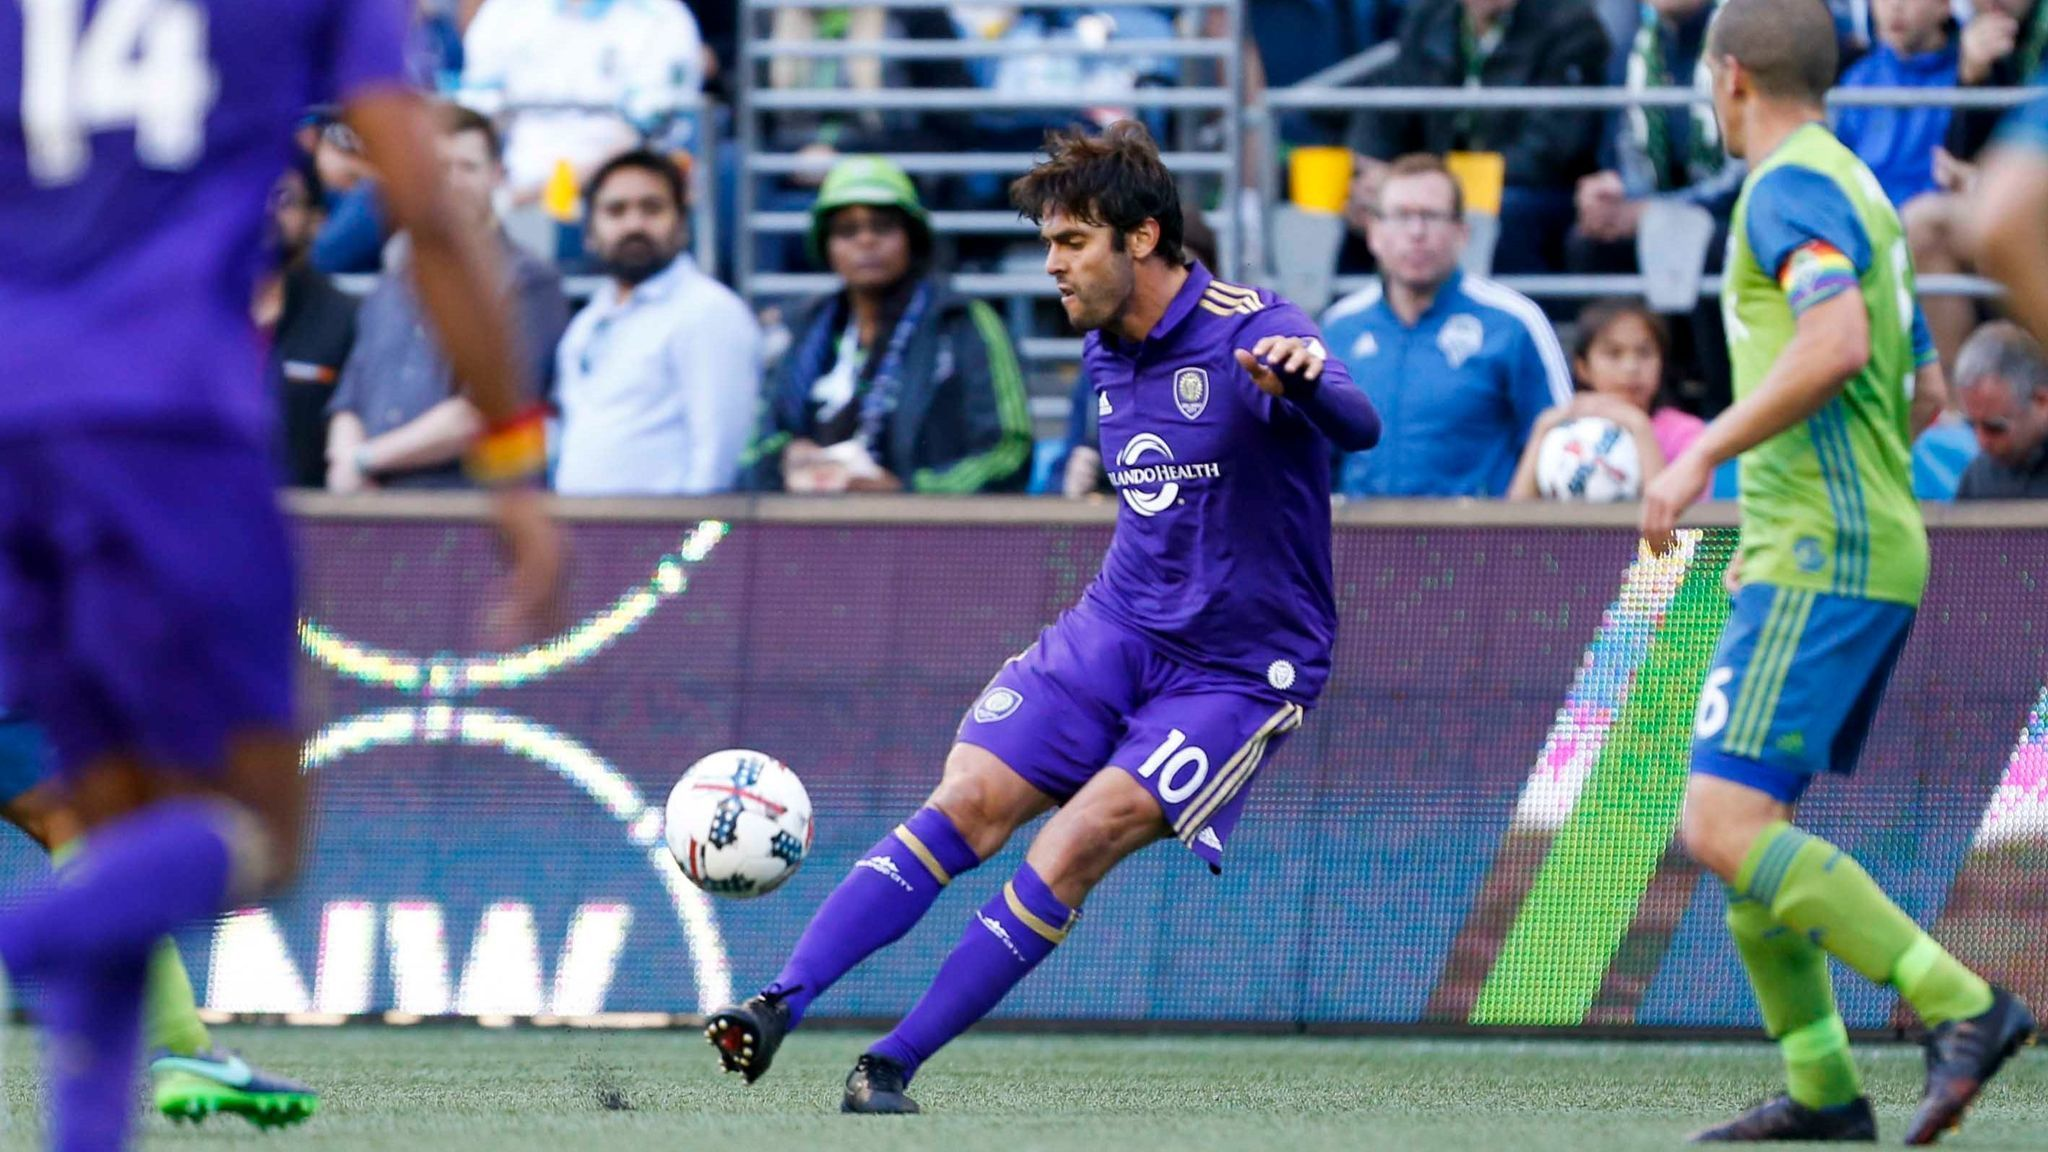 Os-sp-orlando-city-seattle-sounders-0622